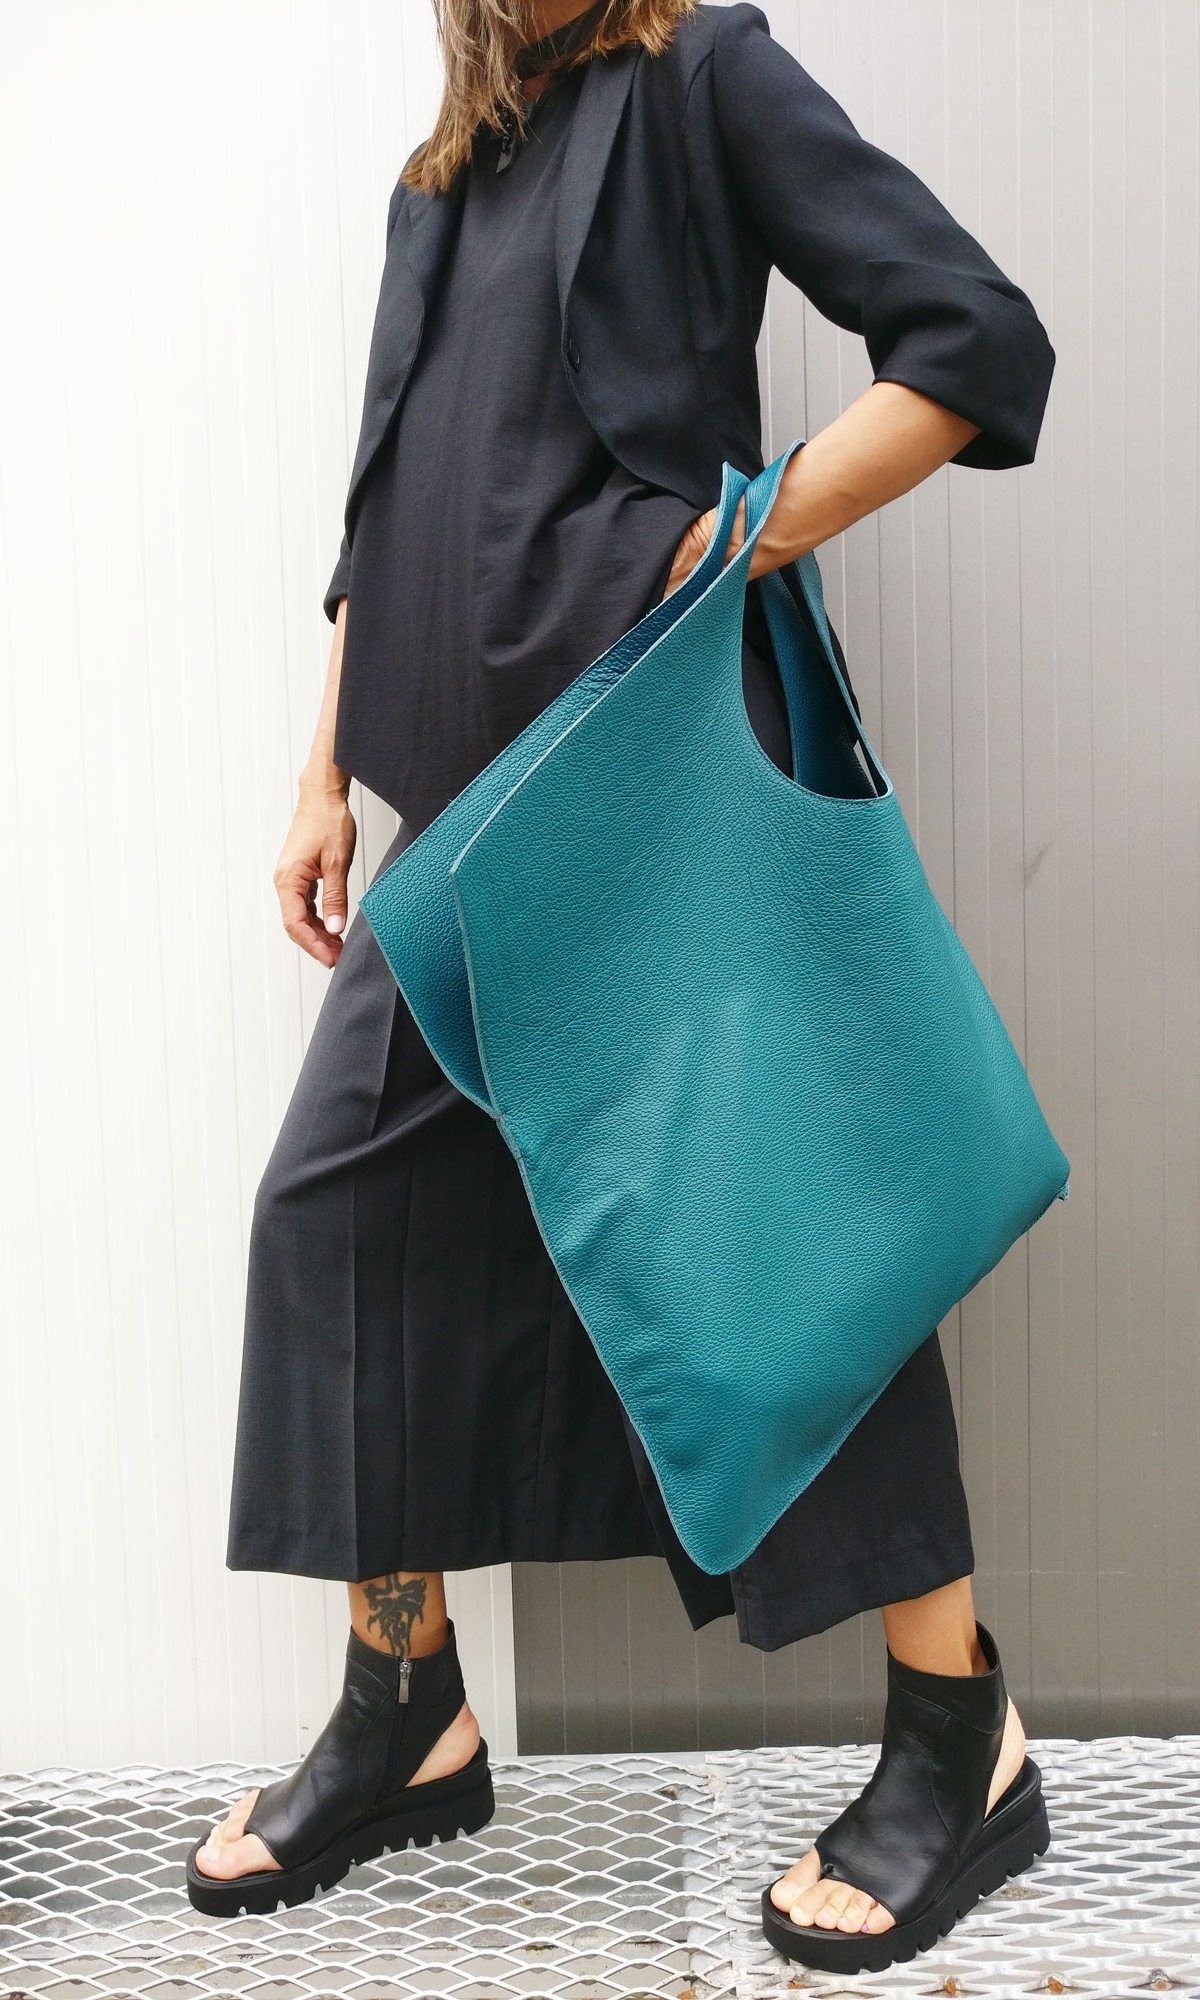 Large Extravagant Genuine Leather Bag A14176